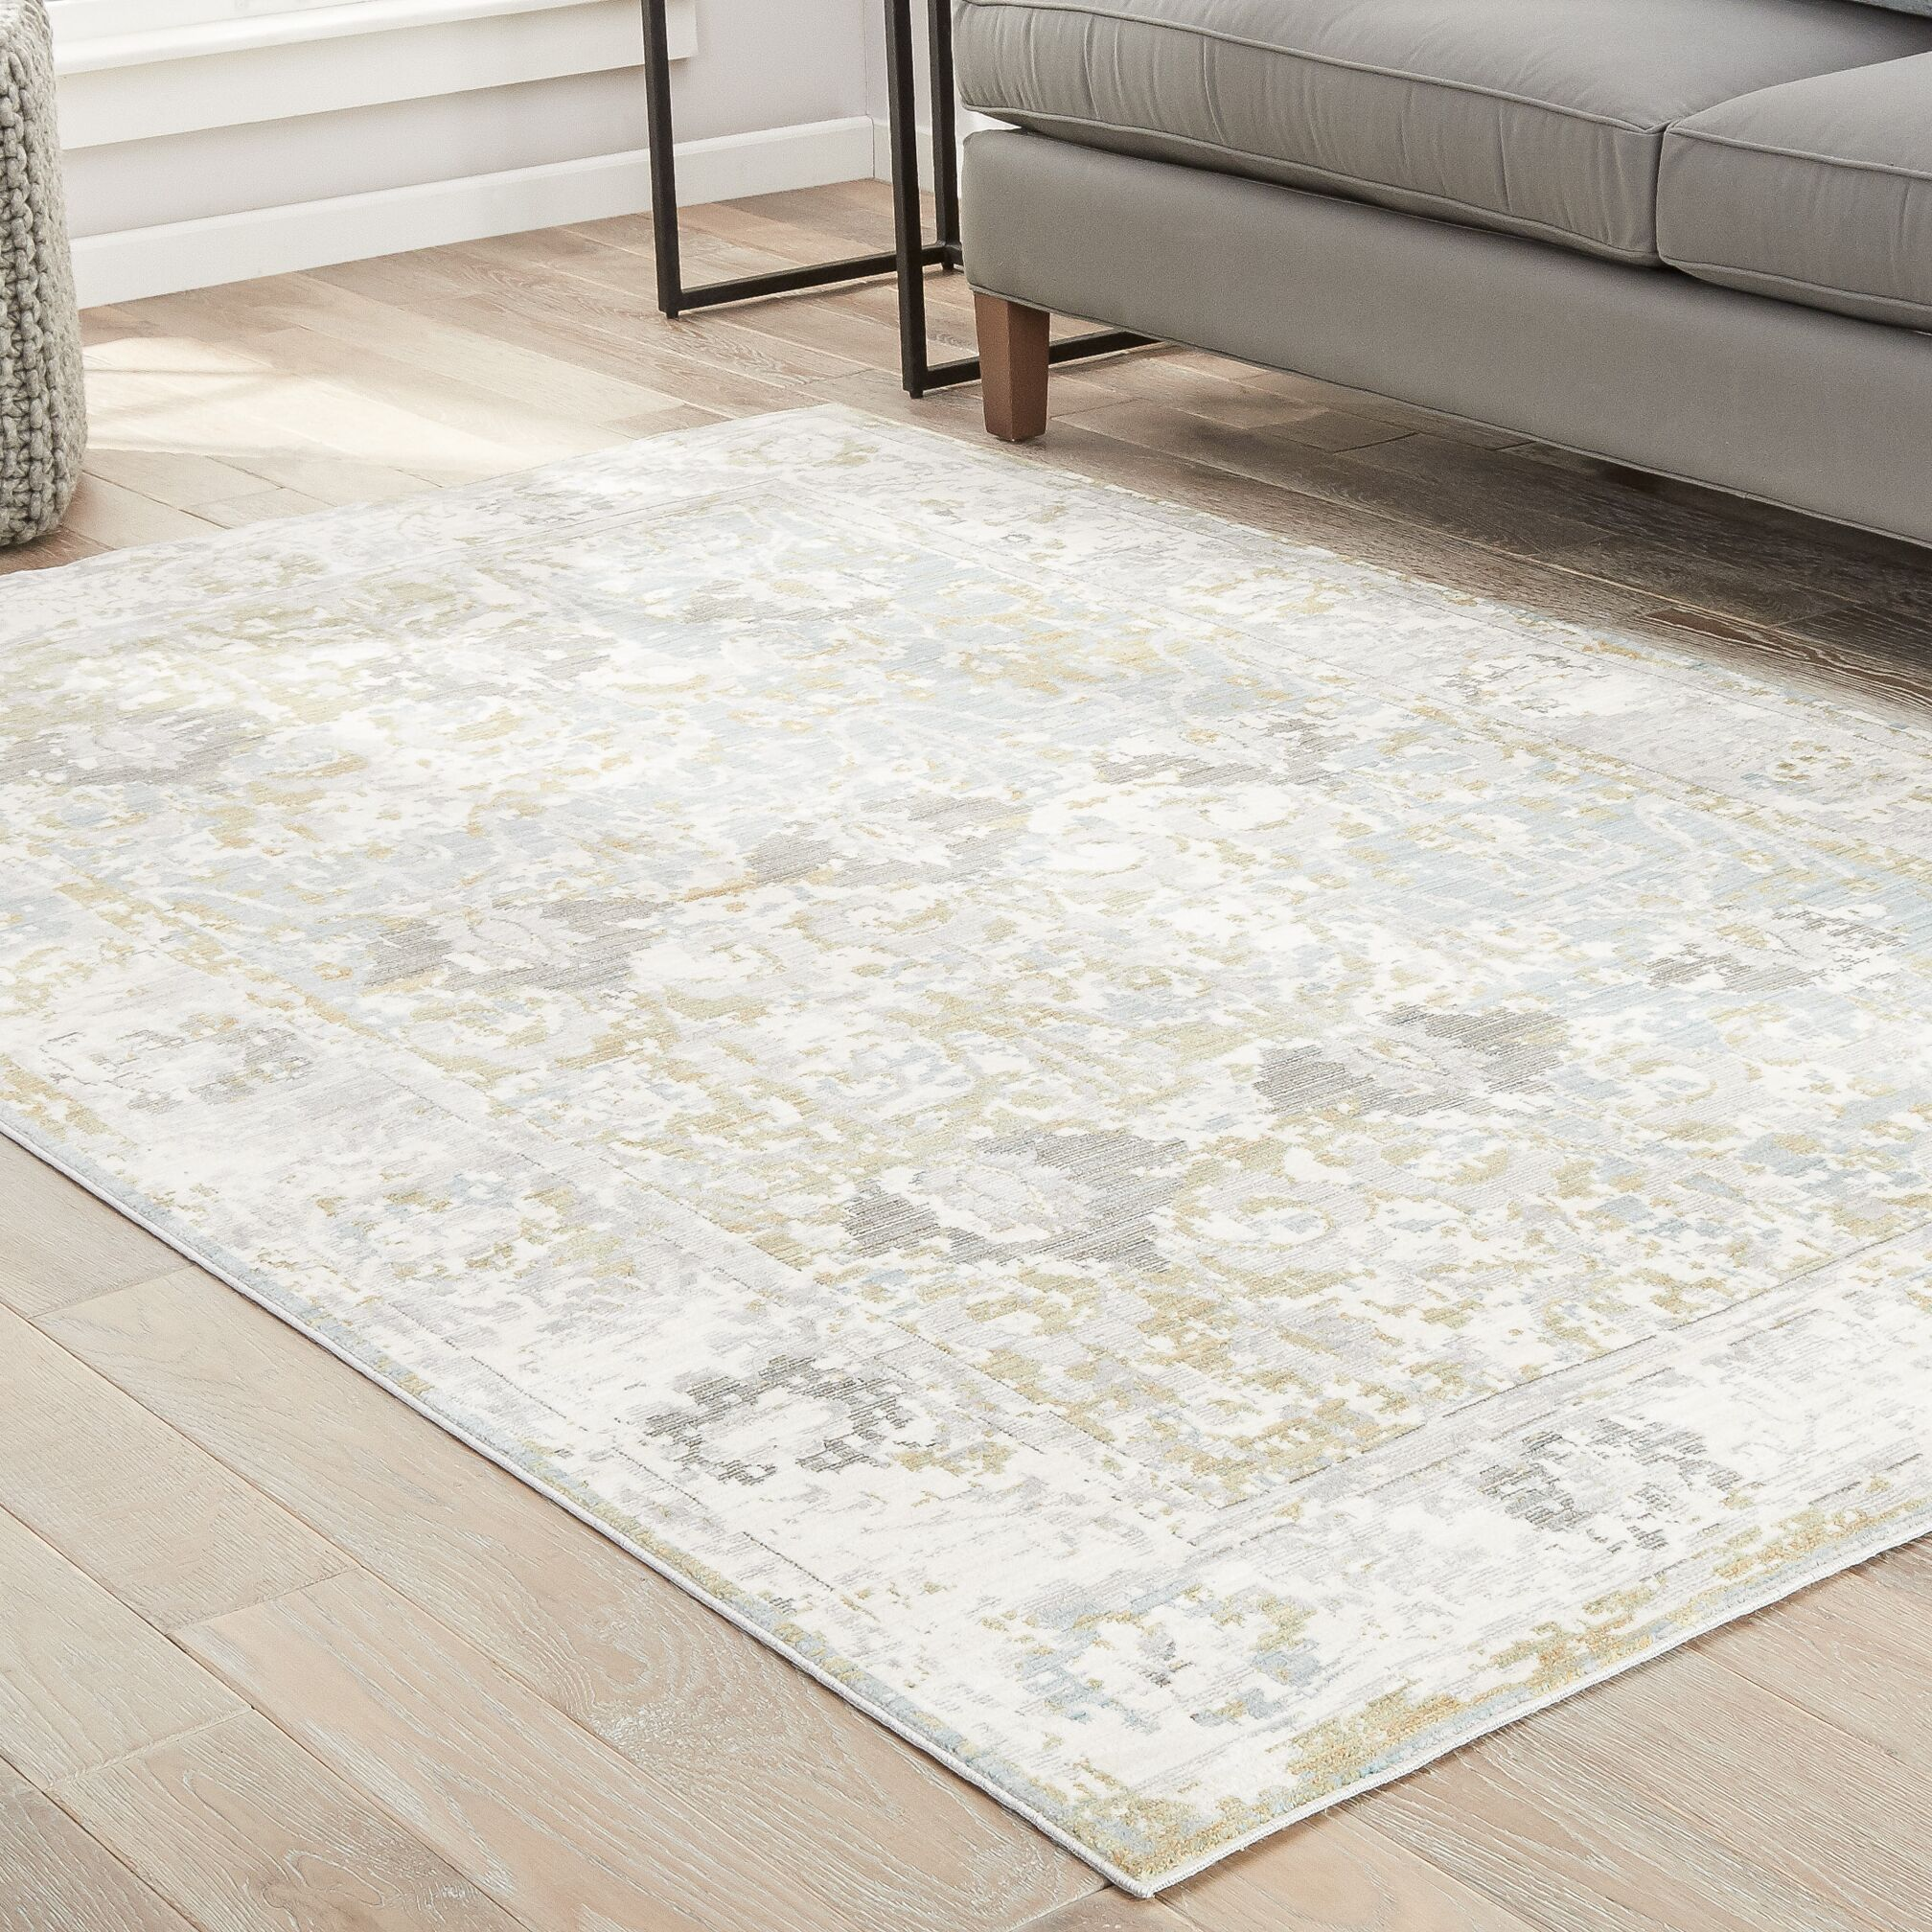 Carly Antique White/Tourmaline Area Rug Rug Size: Rectangle 10' x 14'